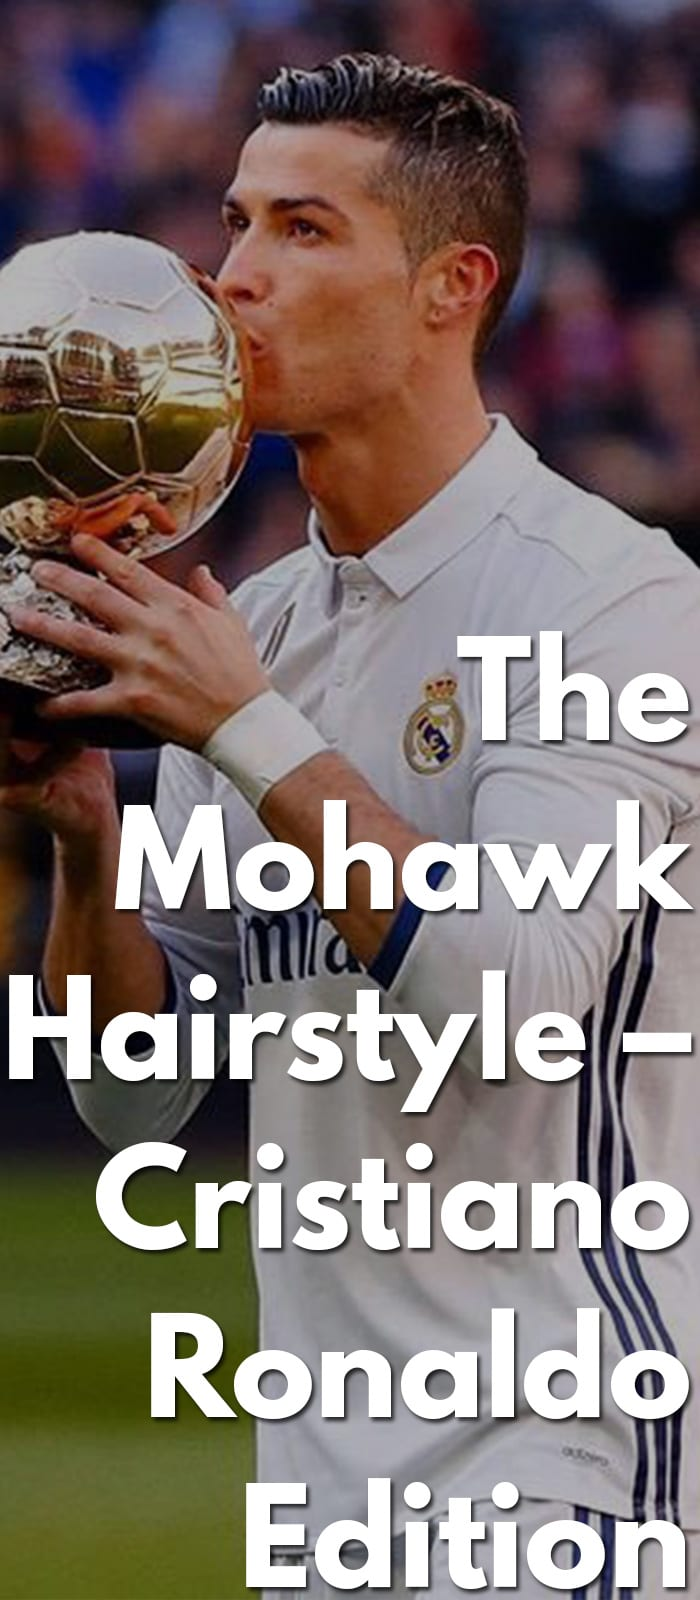 The-Mohawk-Hairstyle-–-Cristiano-Ronaldo-Edition..